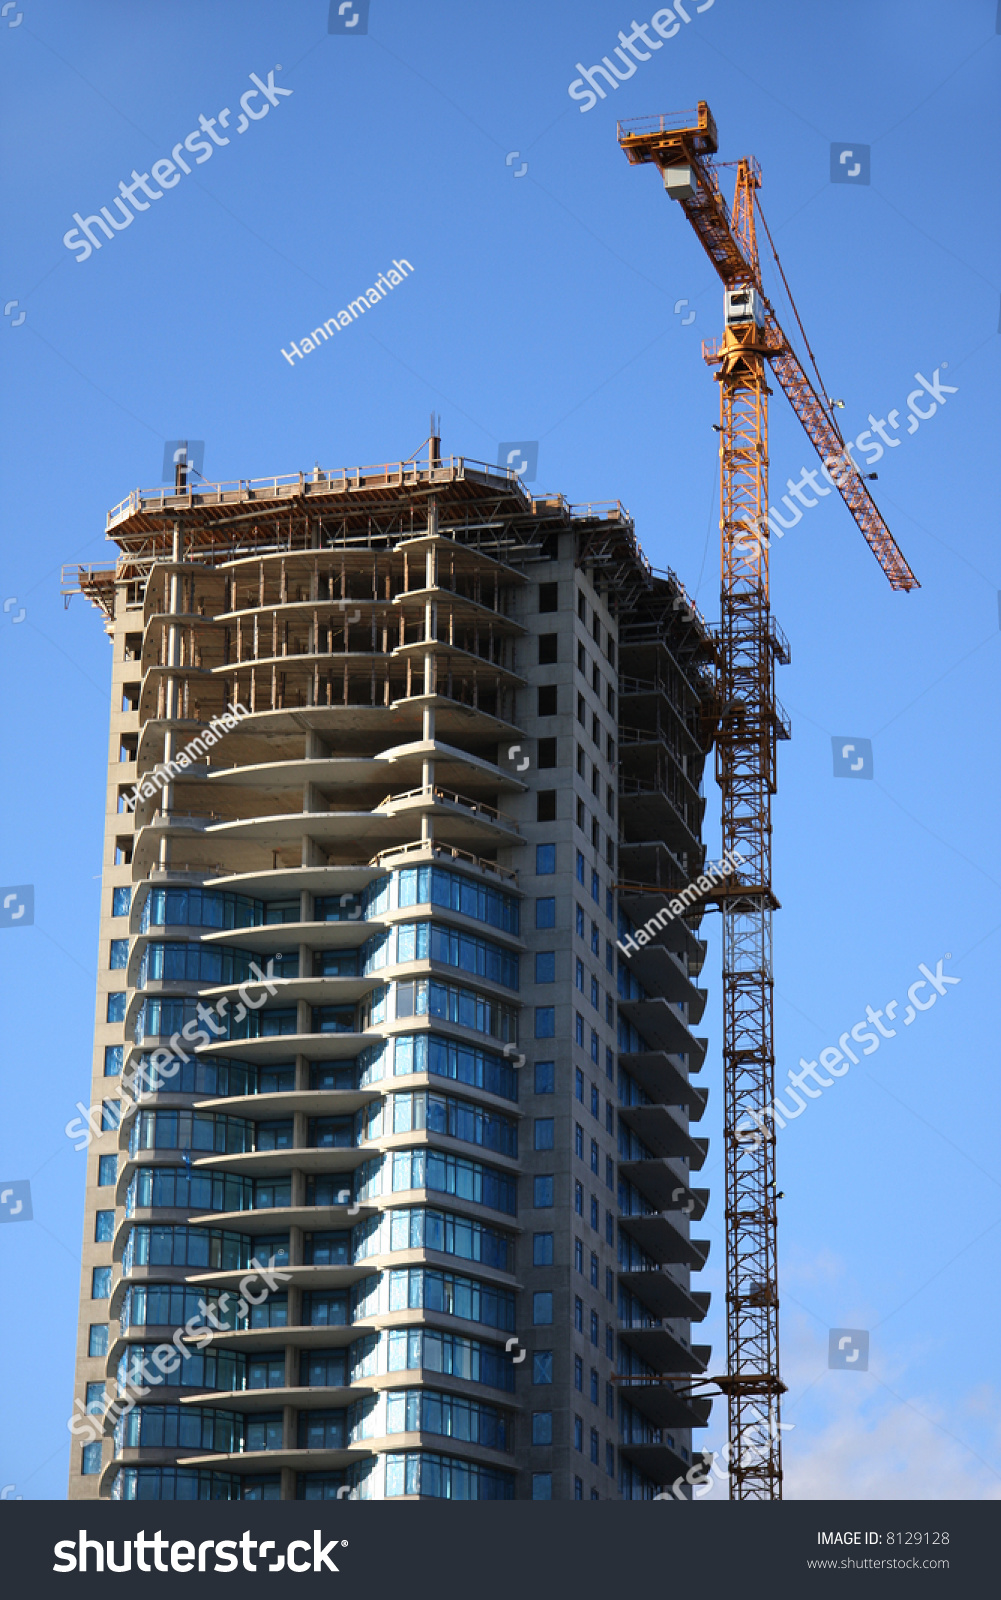 high rise construction site with crane against a bright